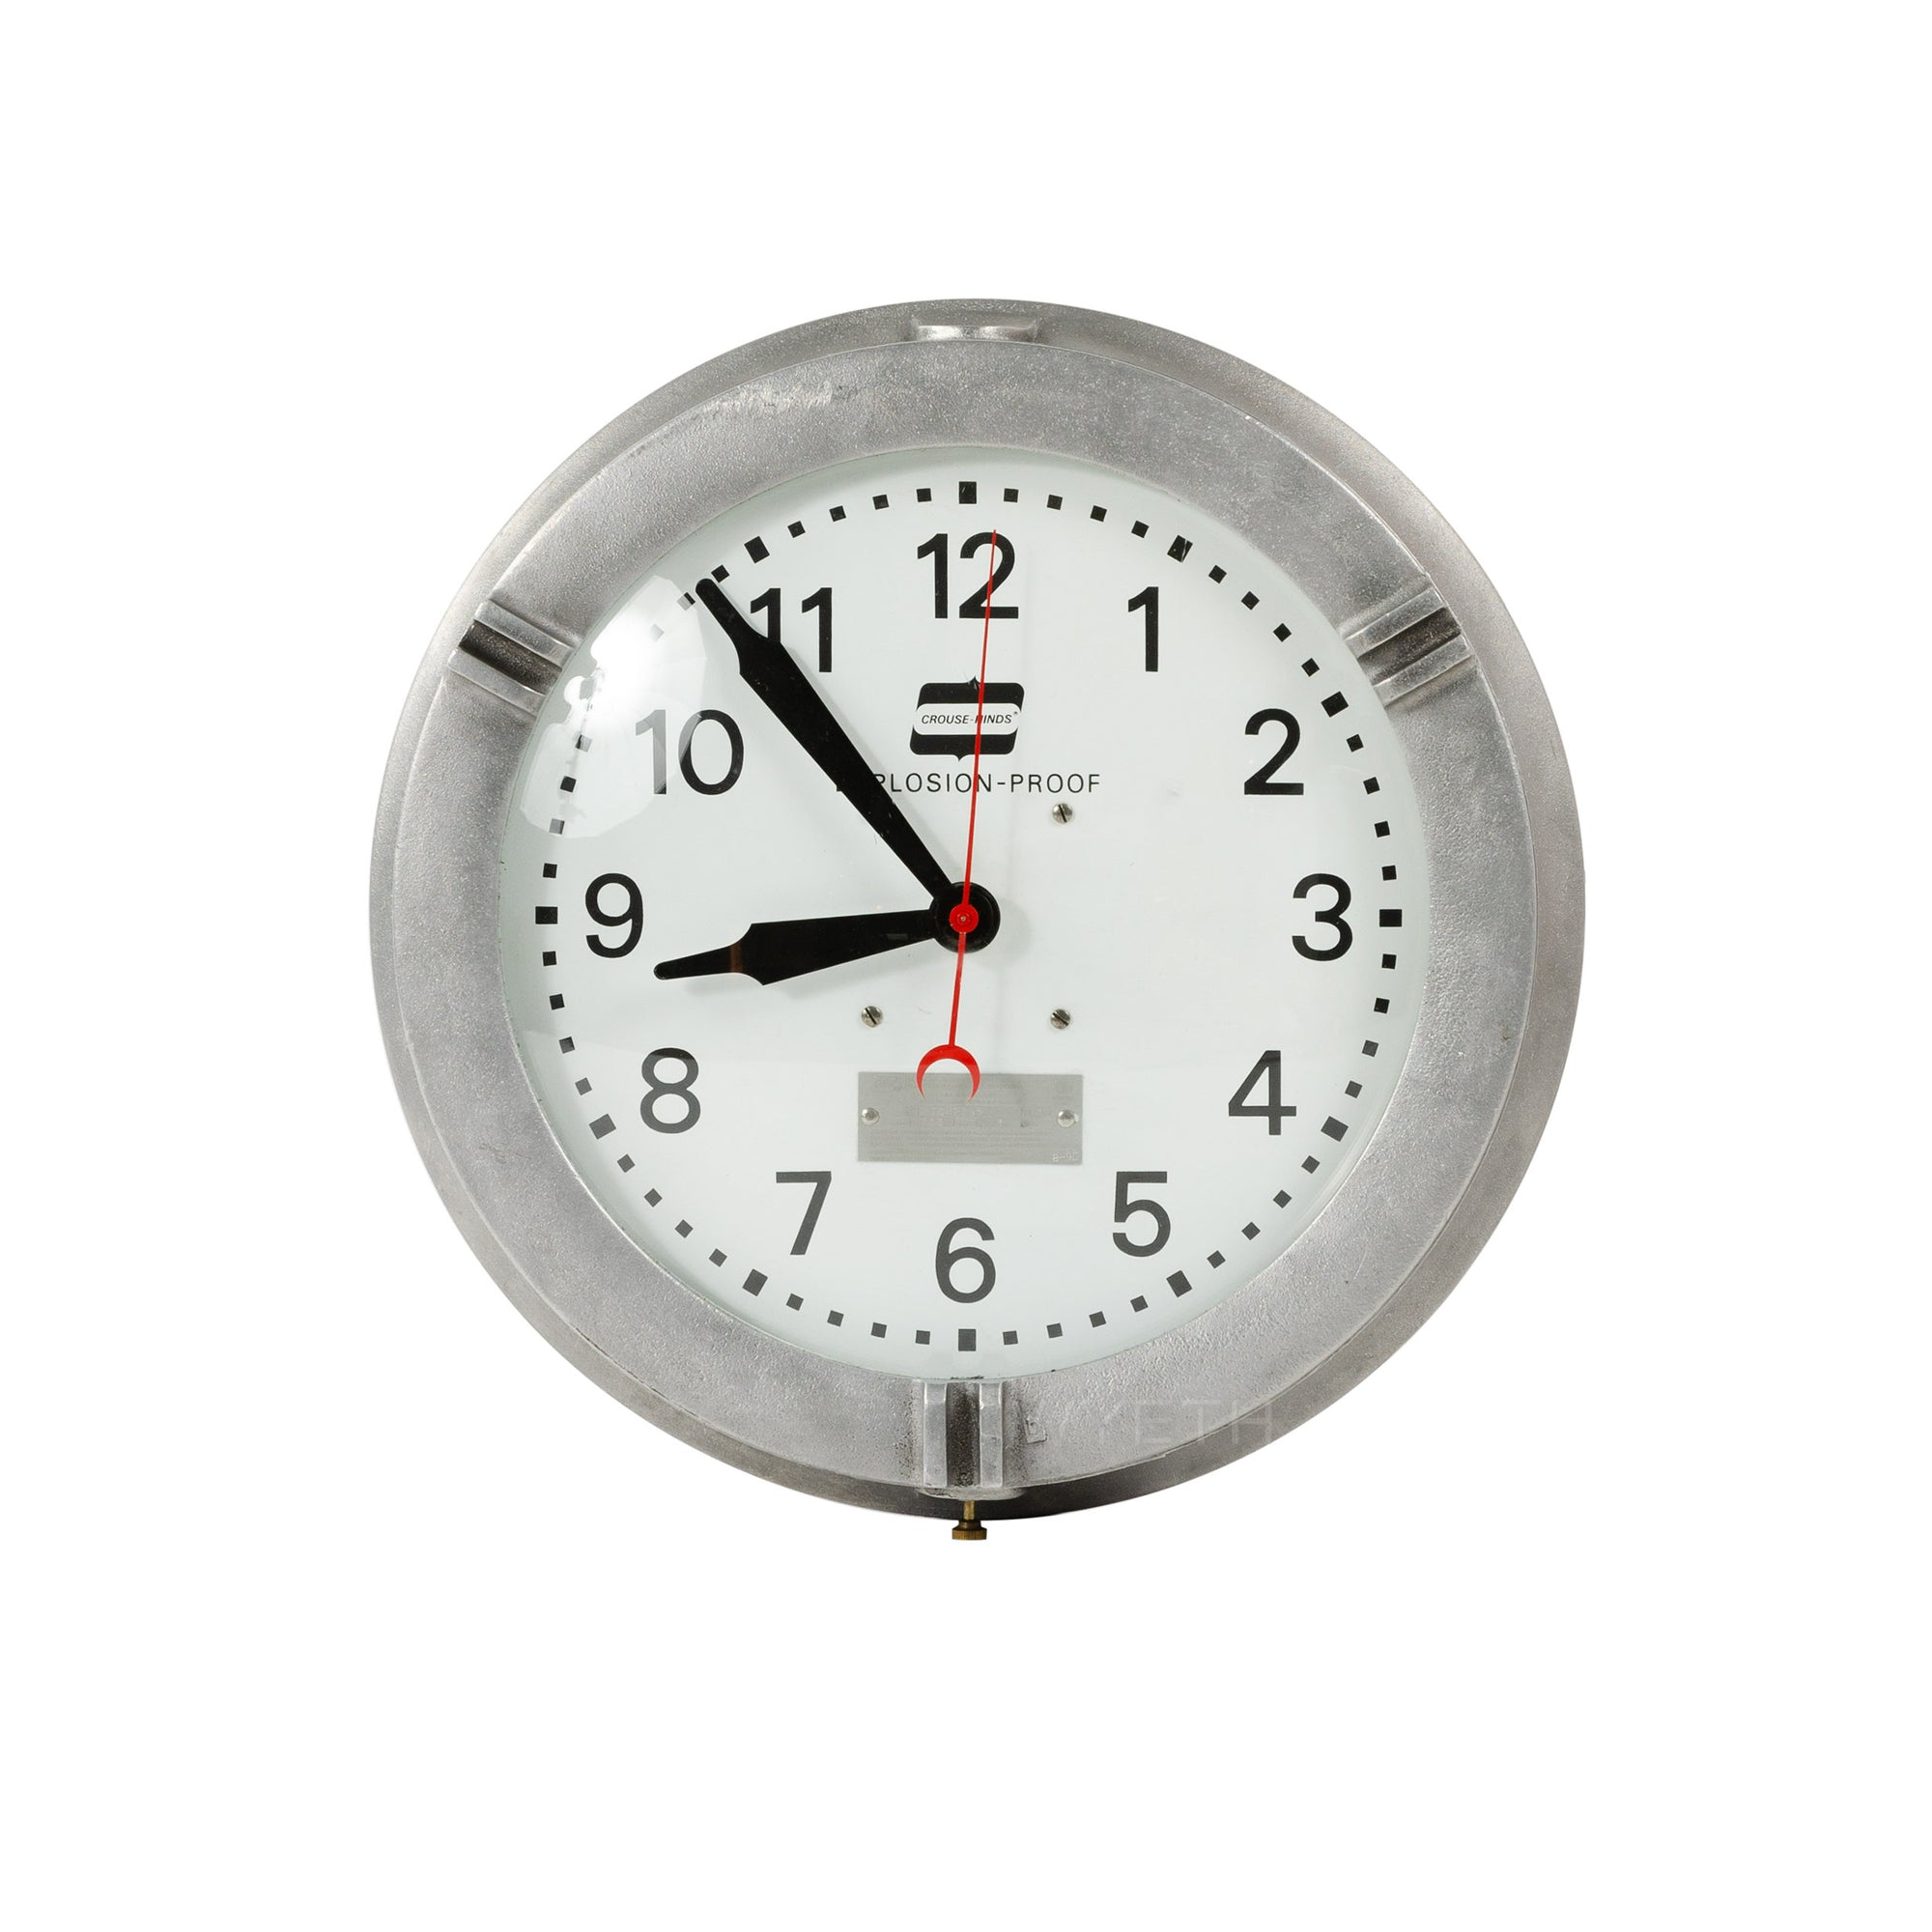 Explosion-Proof Clock - Accessories - Crouse-Hinds WYETH